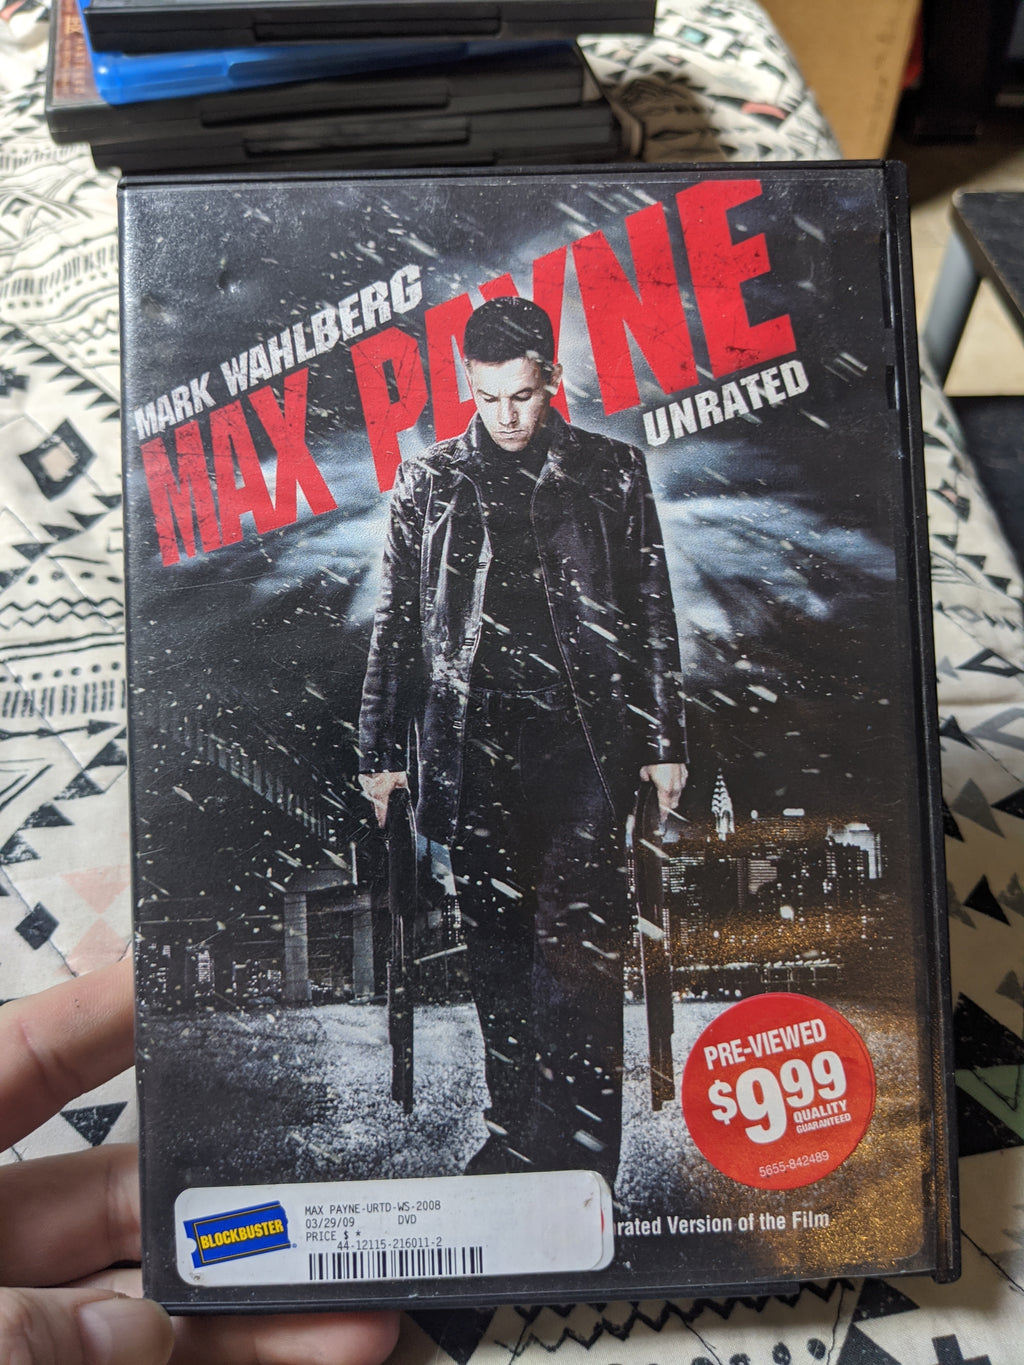 Max Payne Unrated DVD - Mark Wahlberg